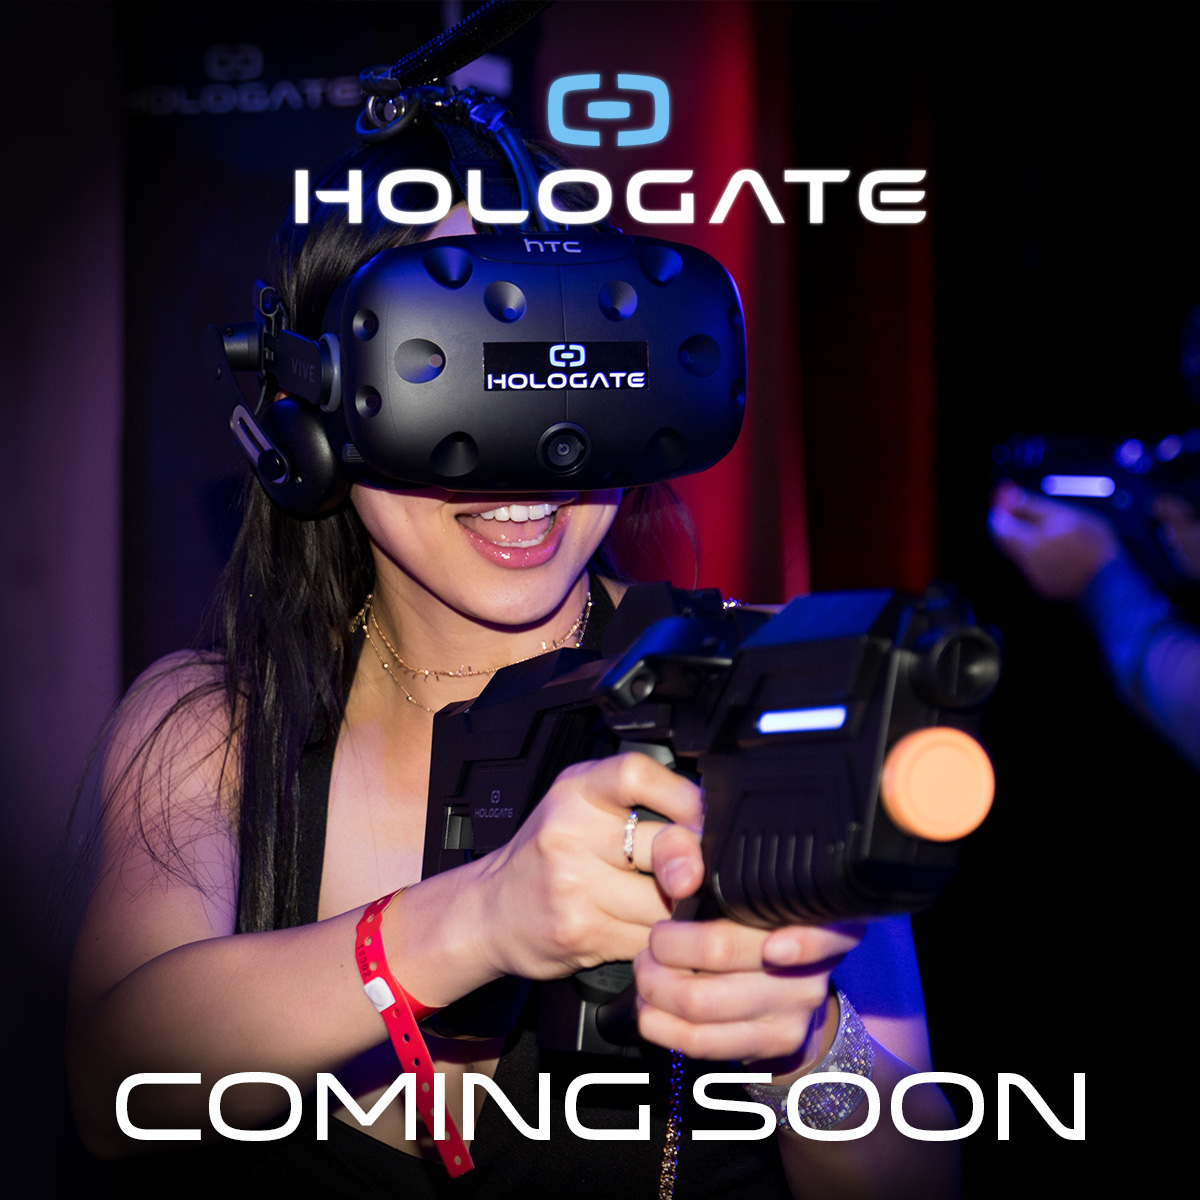 hologate-coming-soon-5